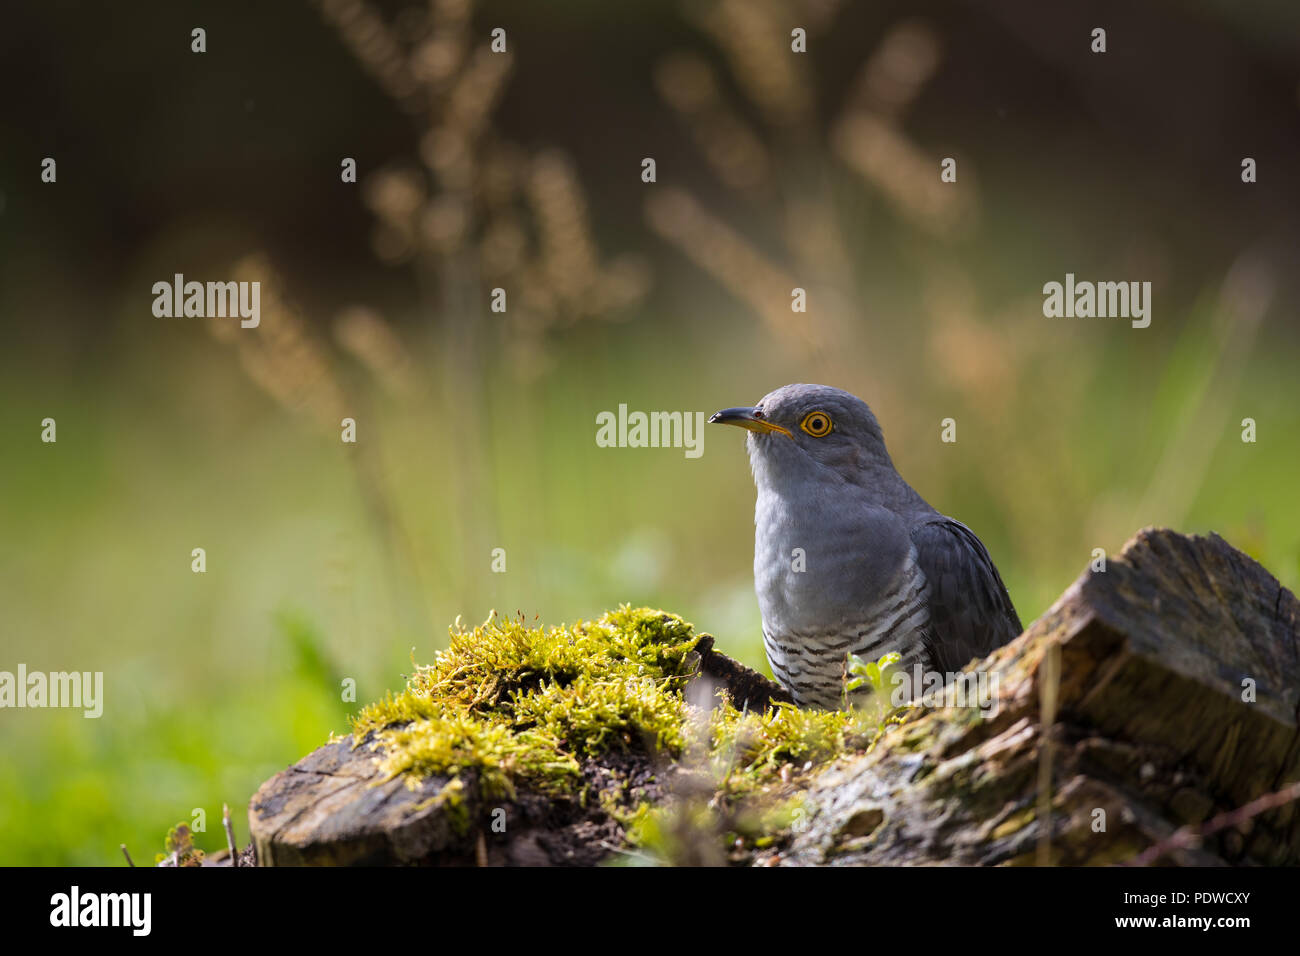 Backlit male cuckoo - Stock Image